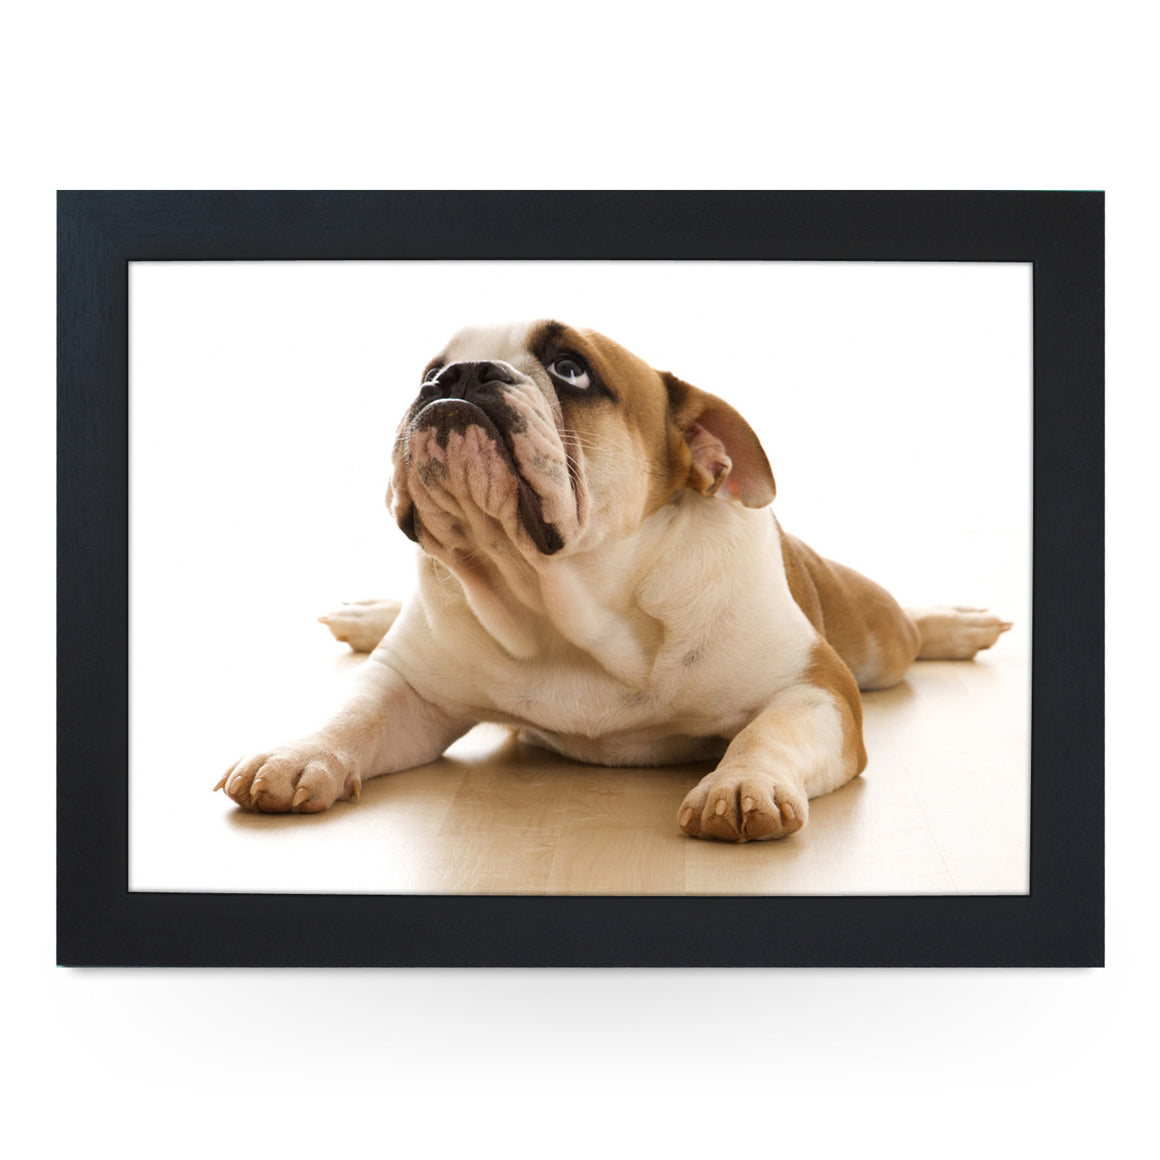 British Bull Dog Lap Tray - L0097